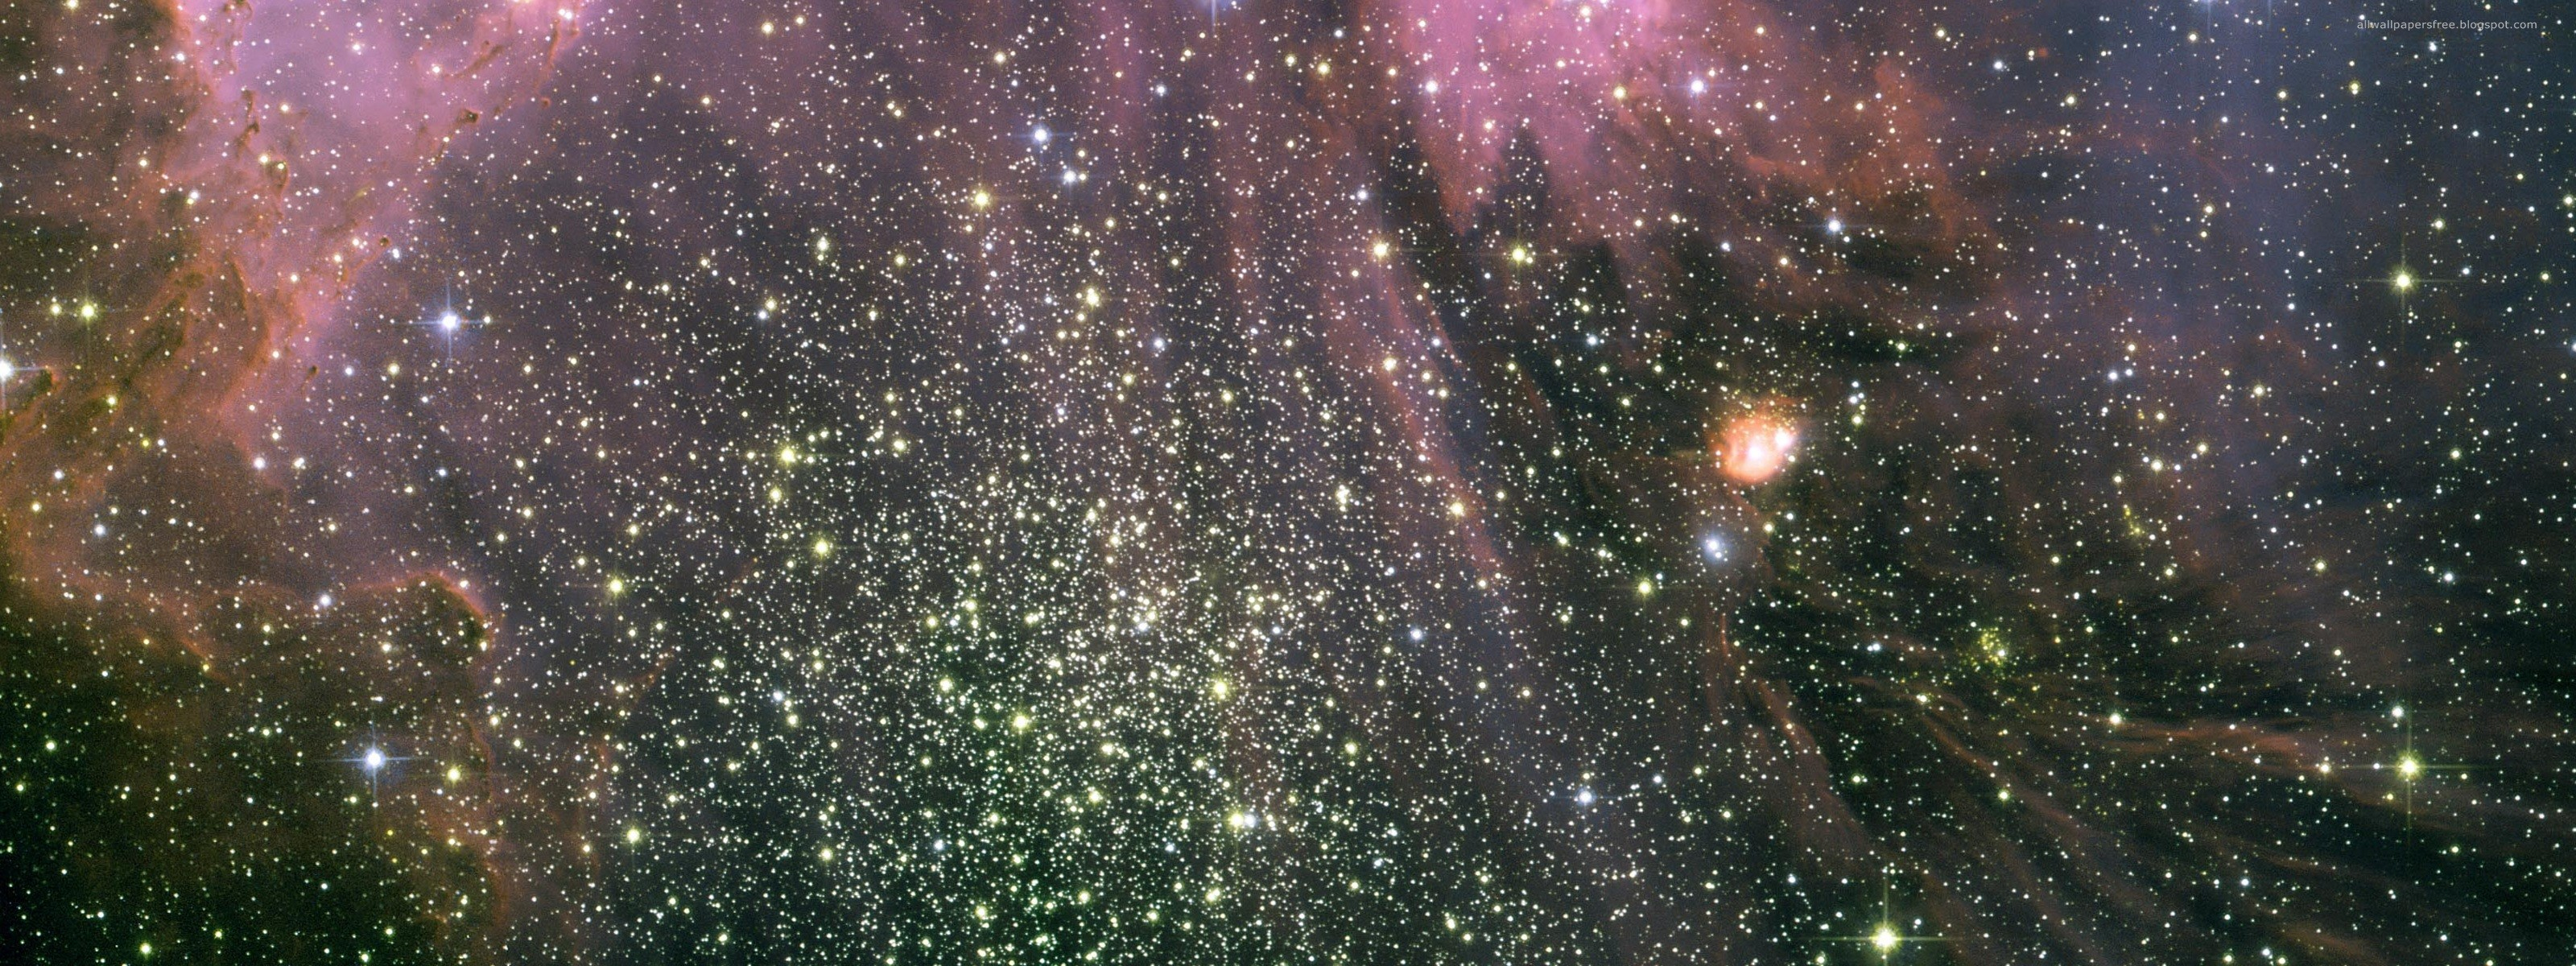 Outer space hubble wallpaper 3200x1200 22247 wallpaperup - Hubble space wallpapers ...